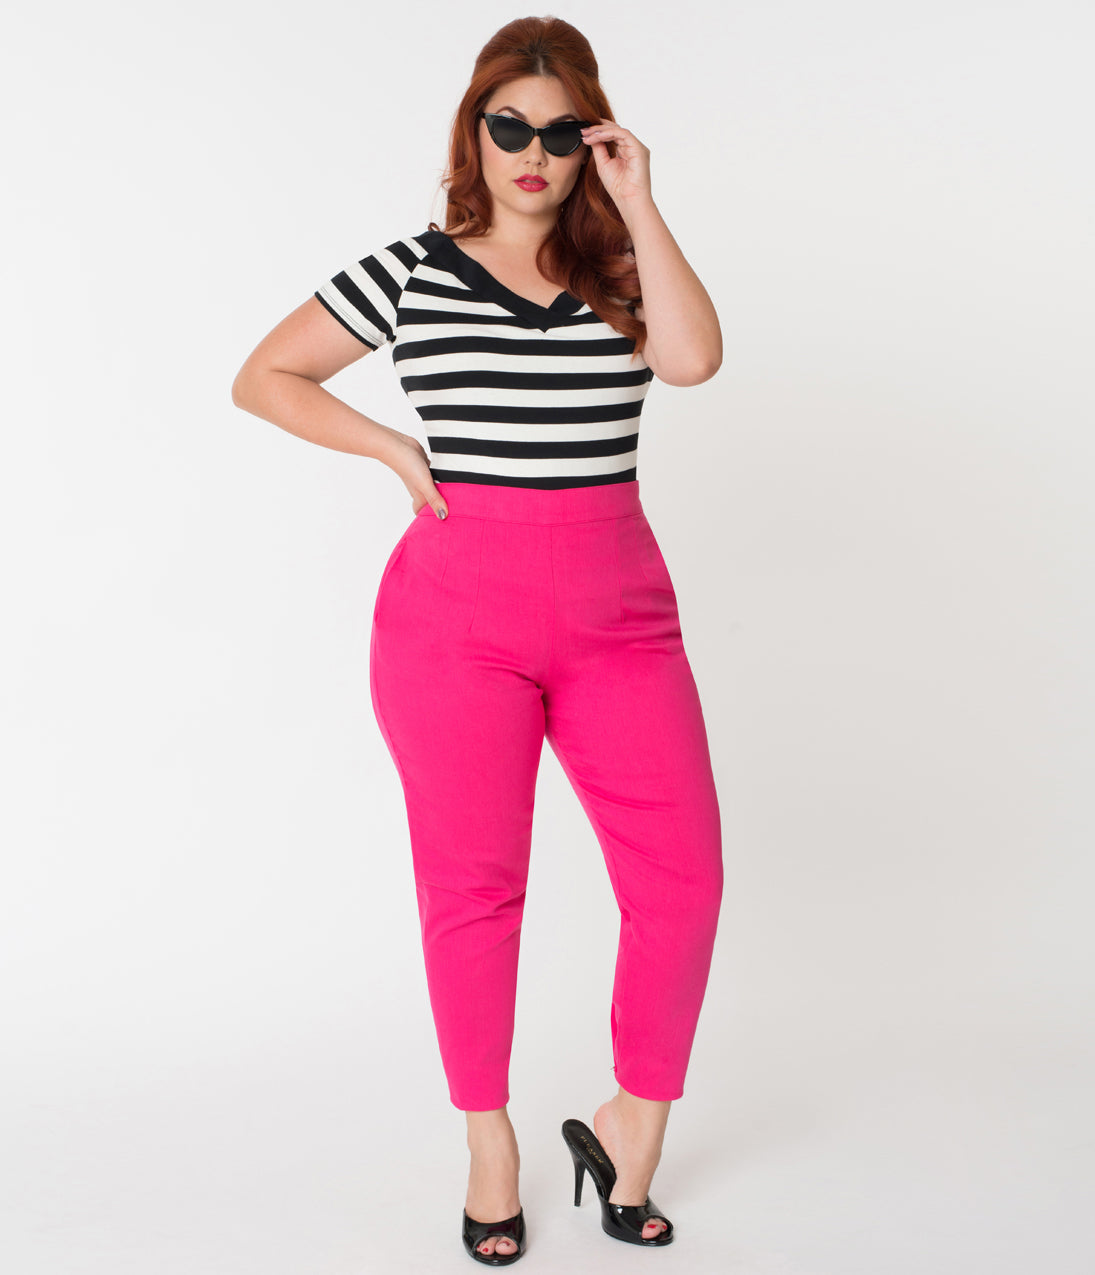 1950s Pants & Jeans- High Waist, Wide Leg, Capri, Pedal Pushers Vixen By Micheline Pitt Plus Size Hot Pink Cotton Twill Cigarette Pants $94.00 AT vintagedancer.com